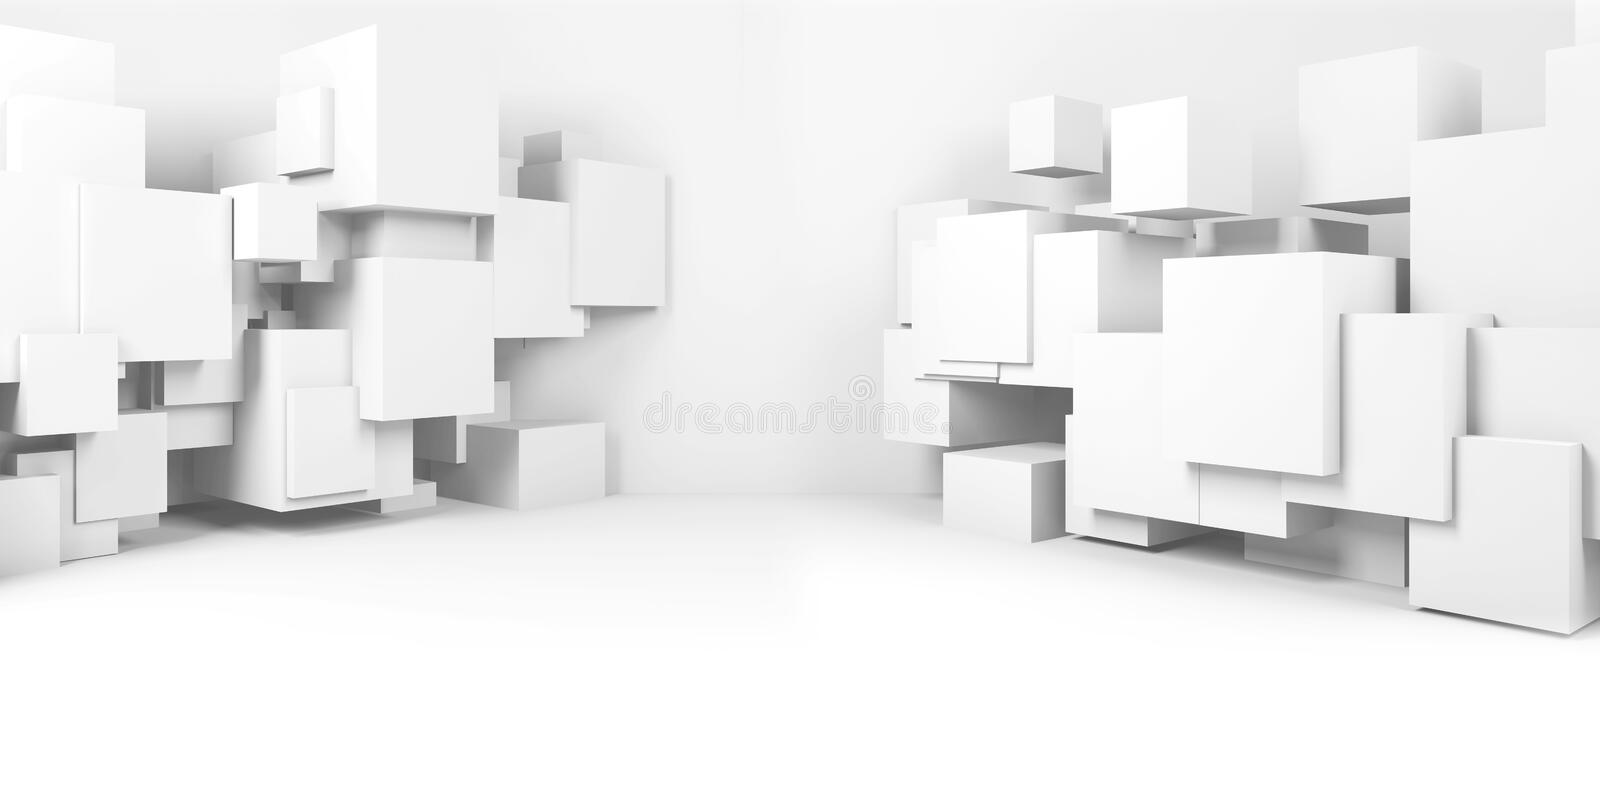 Abstract white digital interior background 3d royalty free illustration